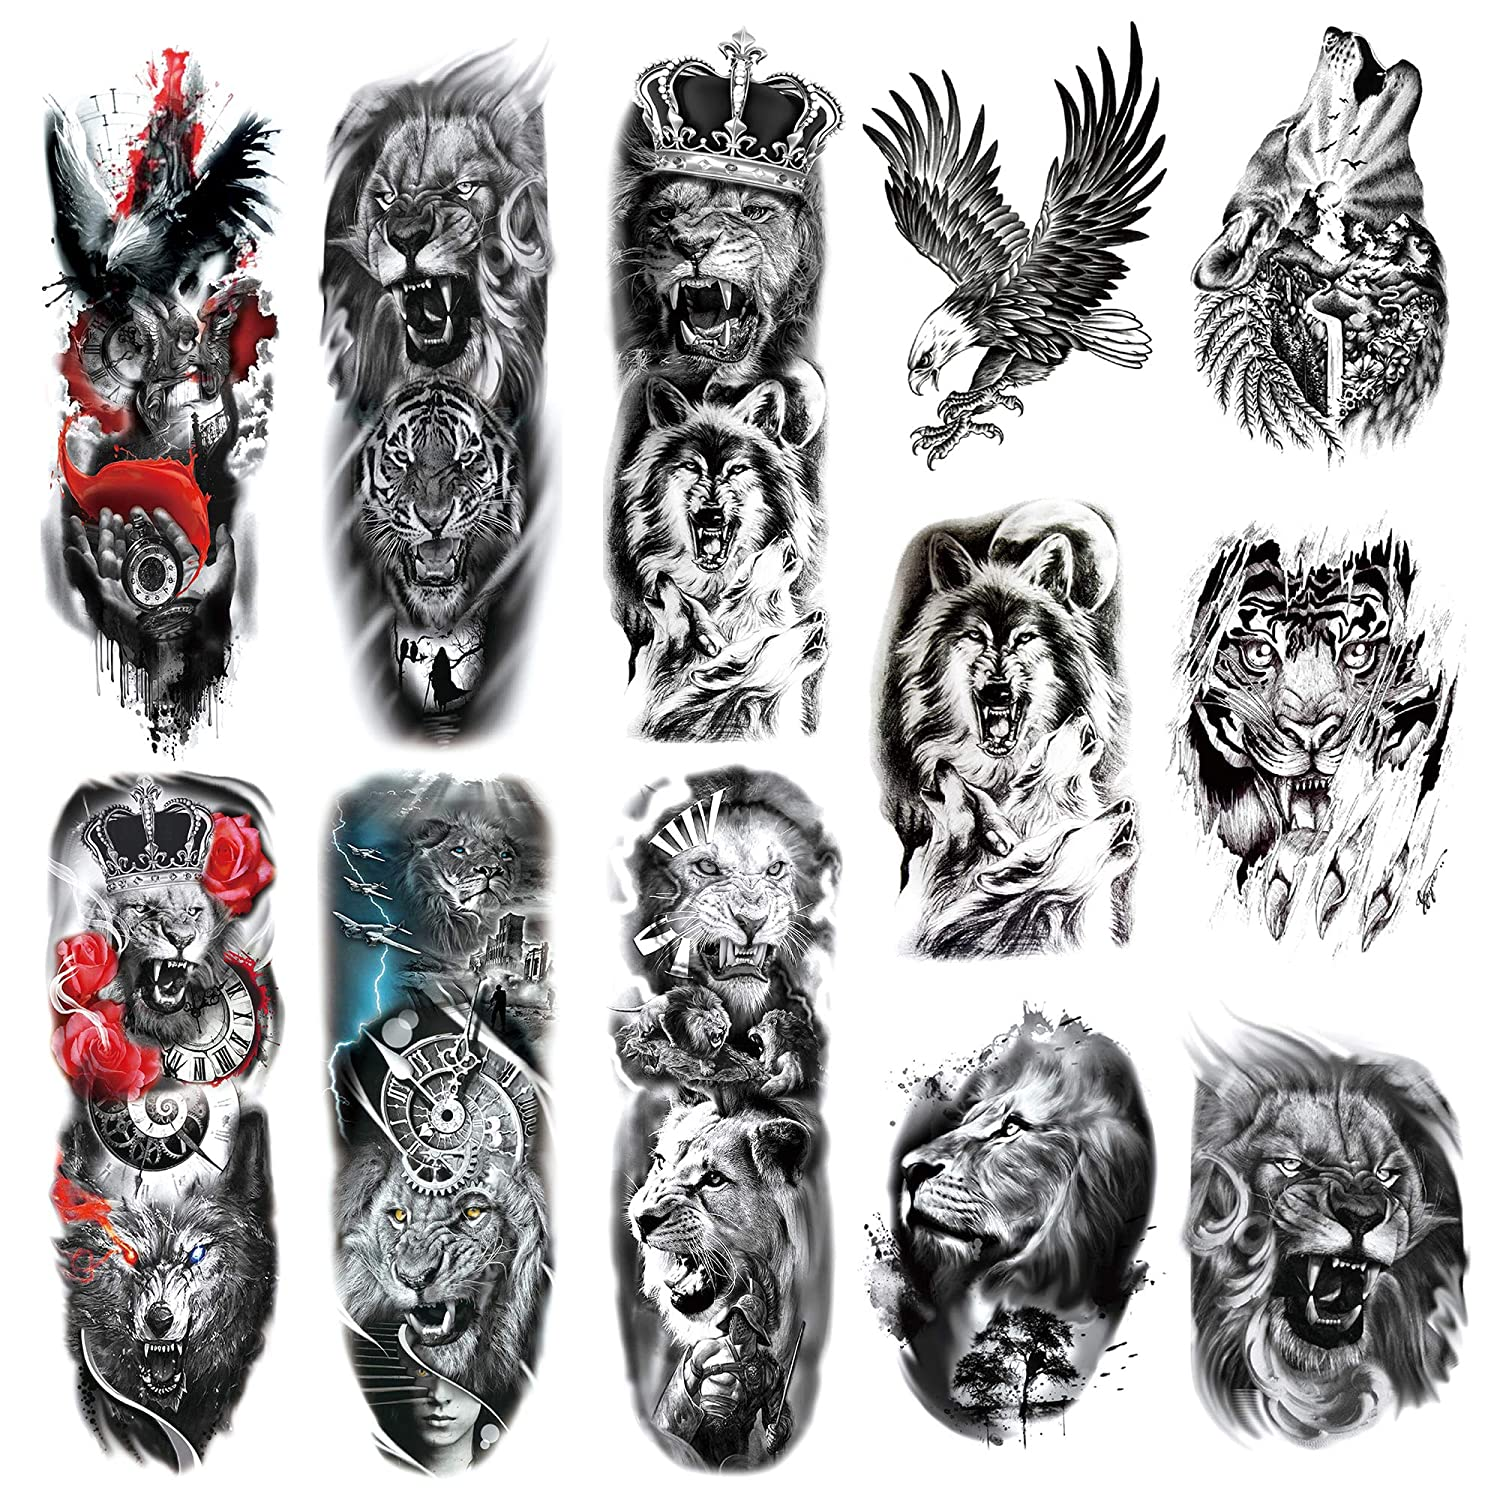 Leoars Full Sleeve Temporary Tattoos Animal Theme Fake Tiger Lion Arm Tattoos Stickers And Extra Large Tattoo Sleeves For Men And Women 12 Sheet Amazon In Beauty This captivating tattoo features the head of a lion linked to three feathers down the upper arm. fake tiger lion arm tattoos stickers